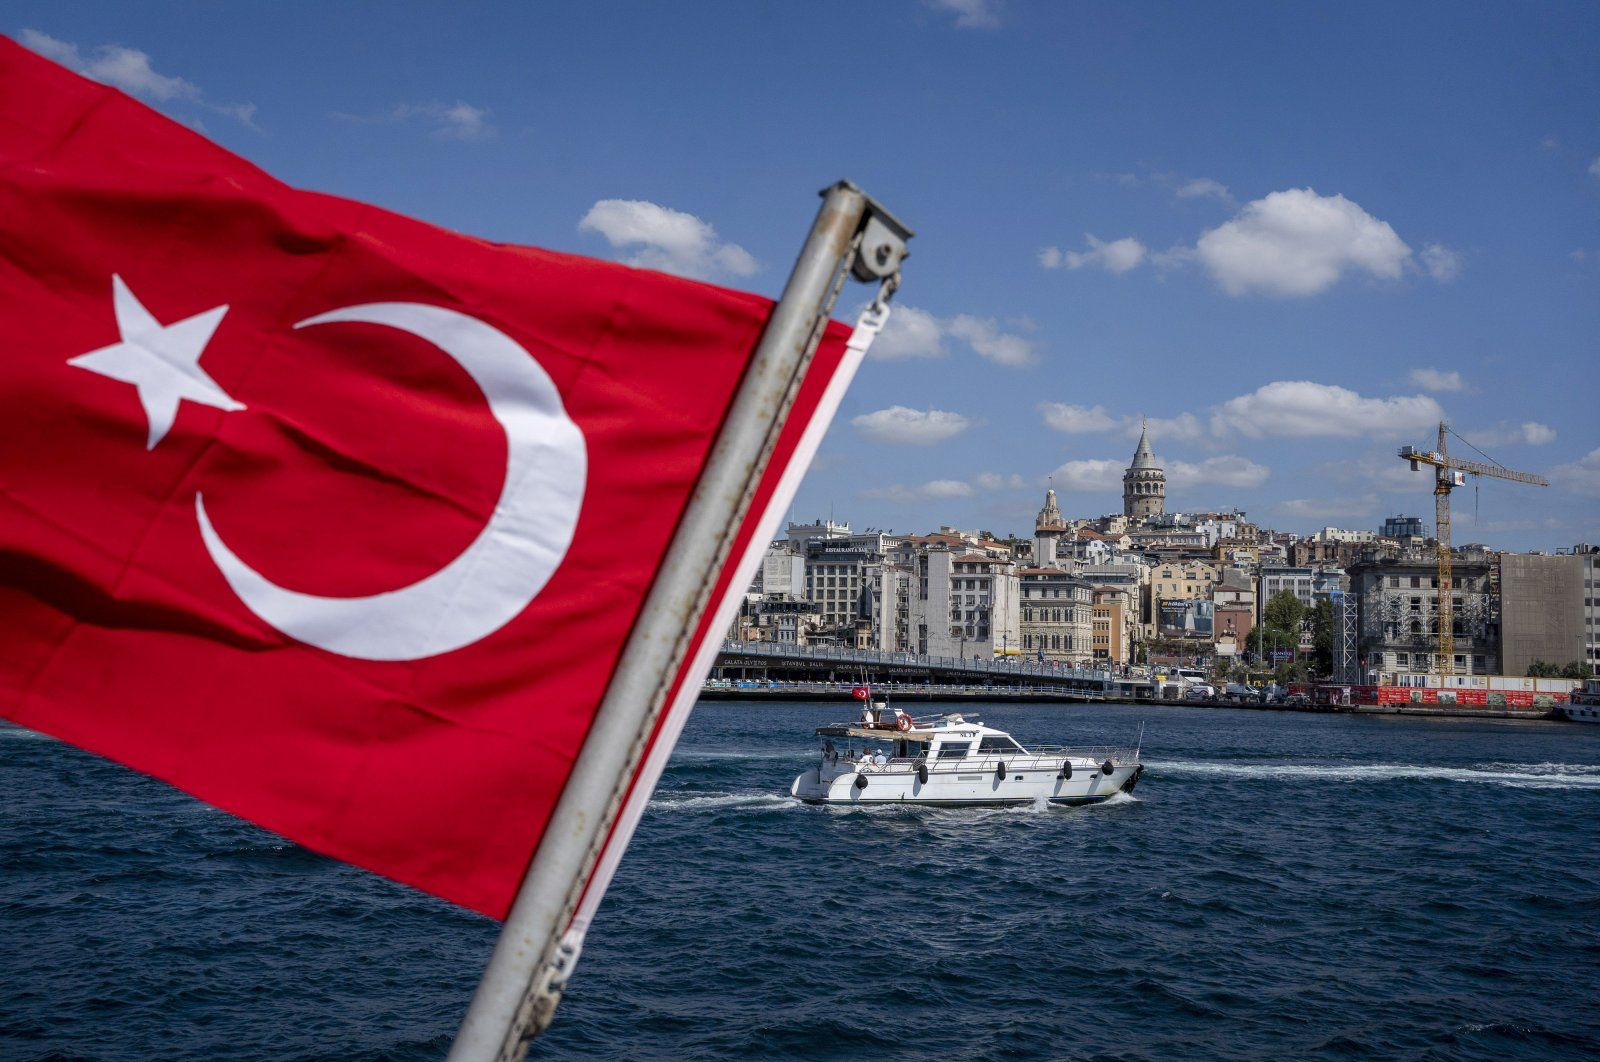 A Turkish national flag on a ferry in Istanbul, Turkey, Aug. 16, 2021. (Photo by Getty Images)